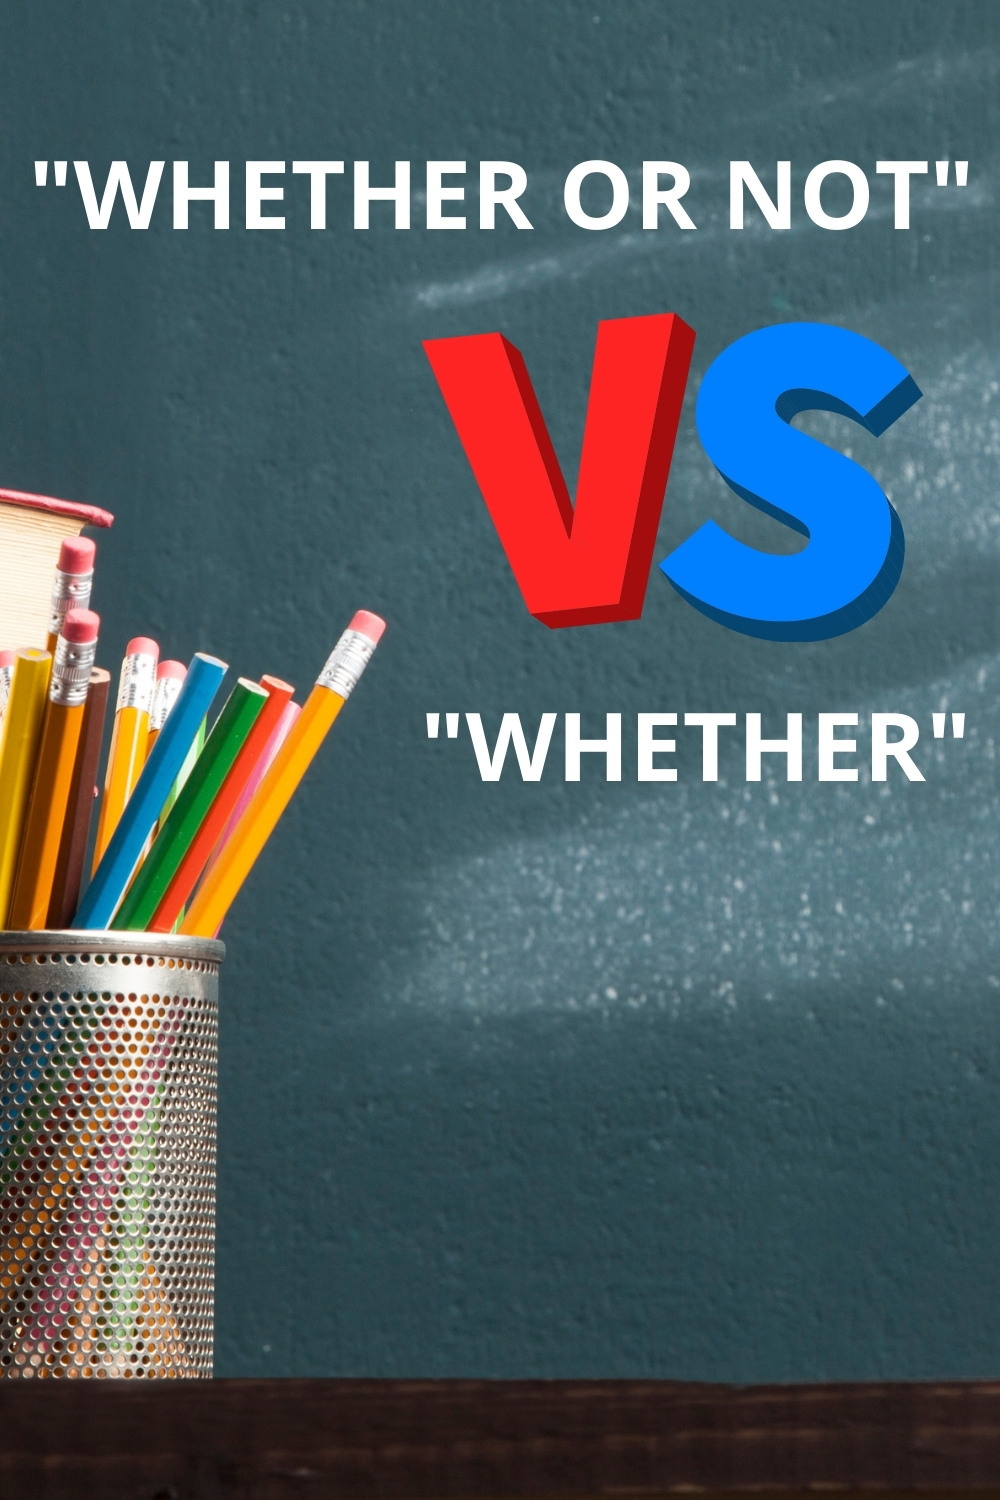 WHETHER OR NOT vs. WHETHER